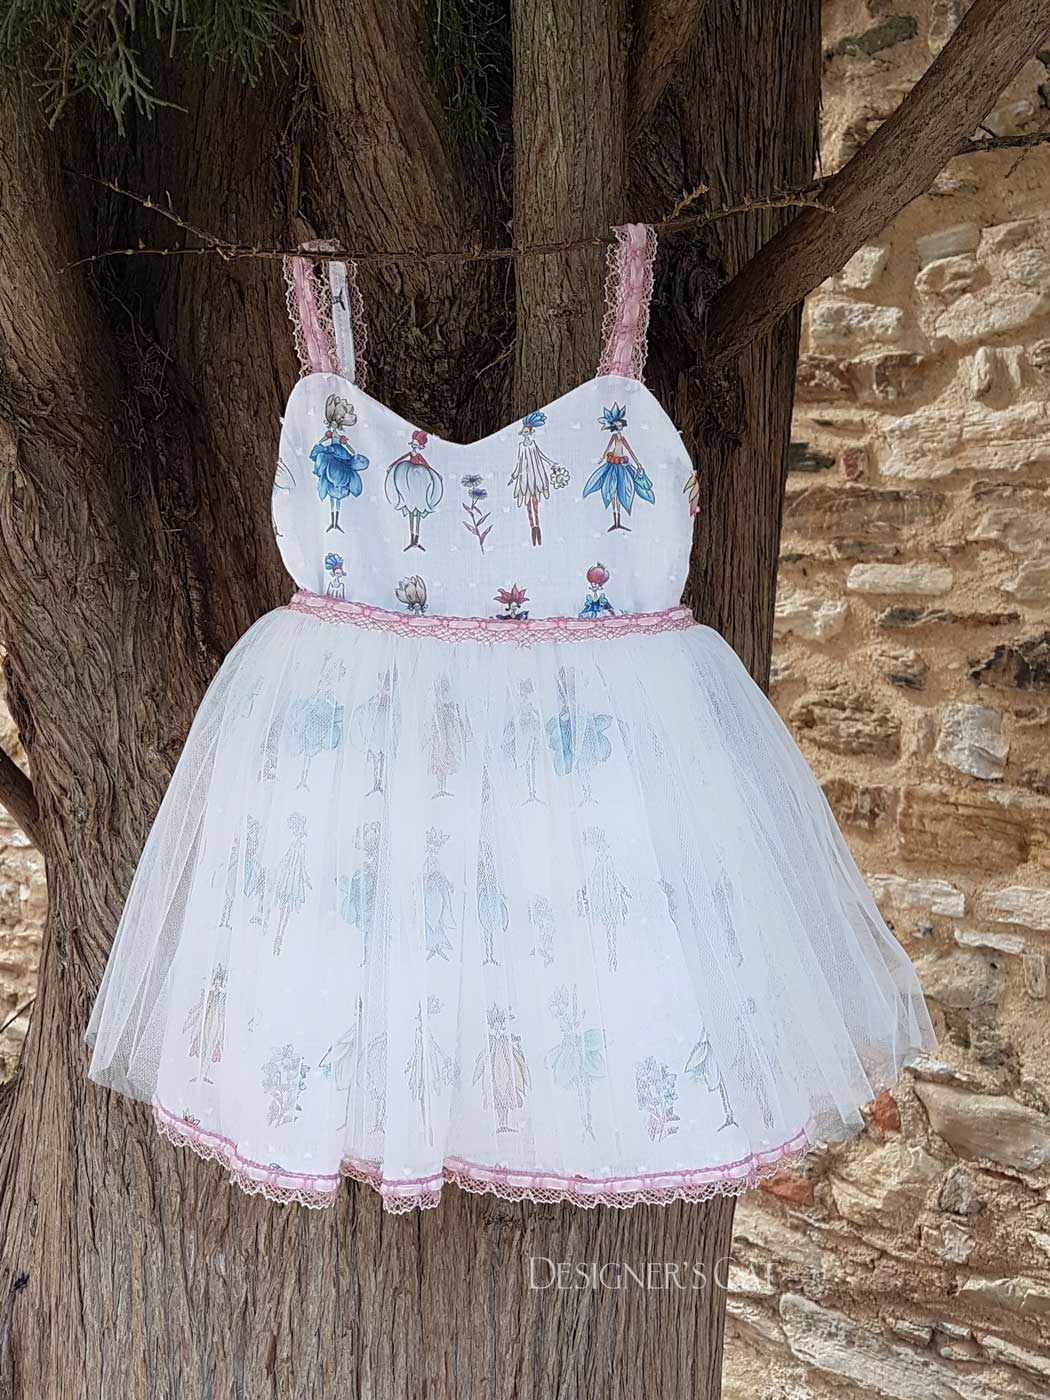 Lilly belle white dress